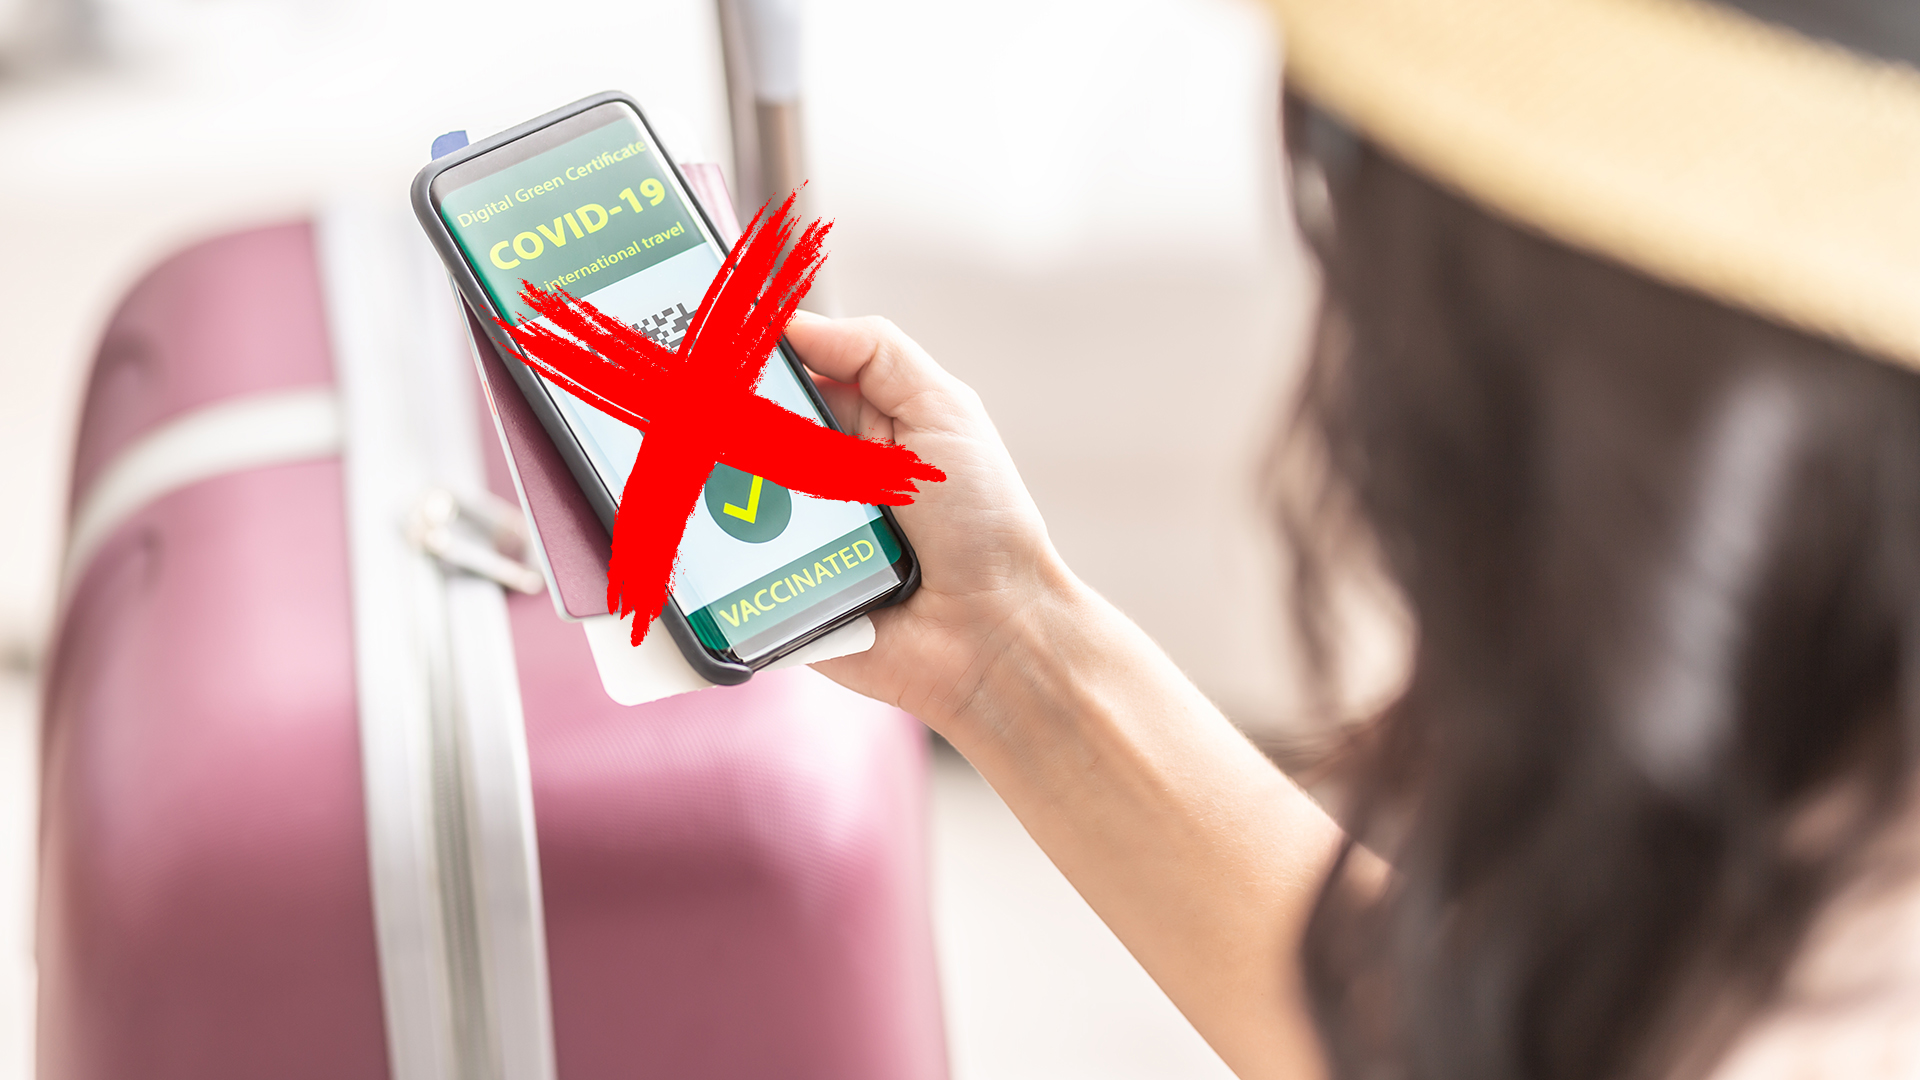 Digital green certificate for international travel displays green Covid-19 vaccinated tick and a QR code in the smartphone of a woman.